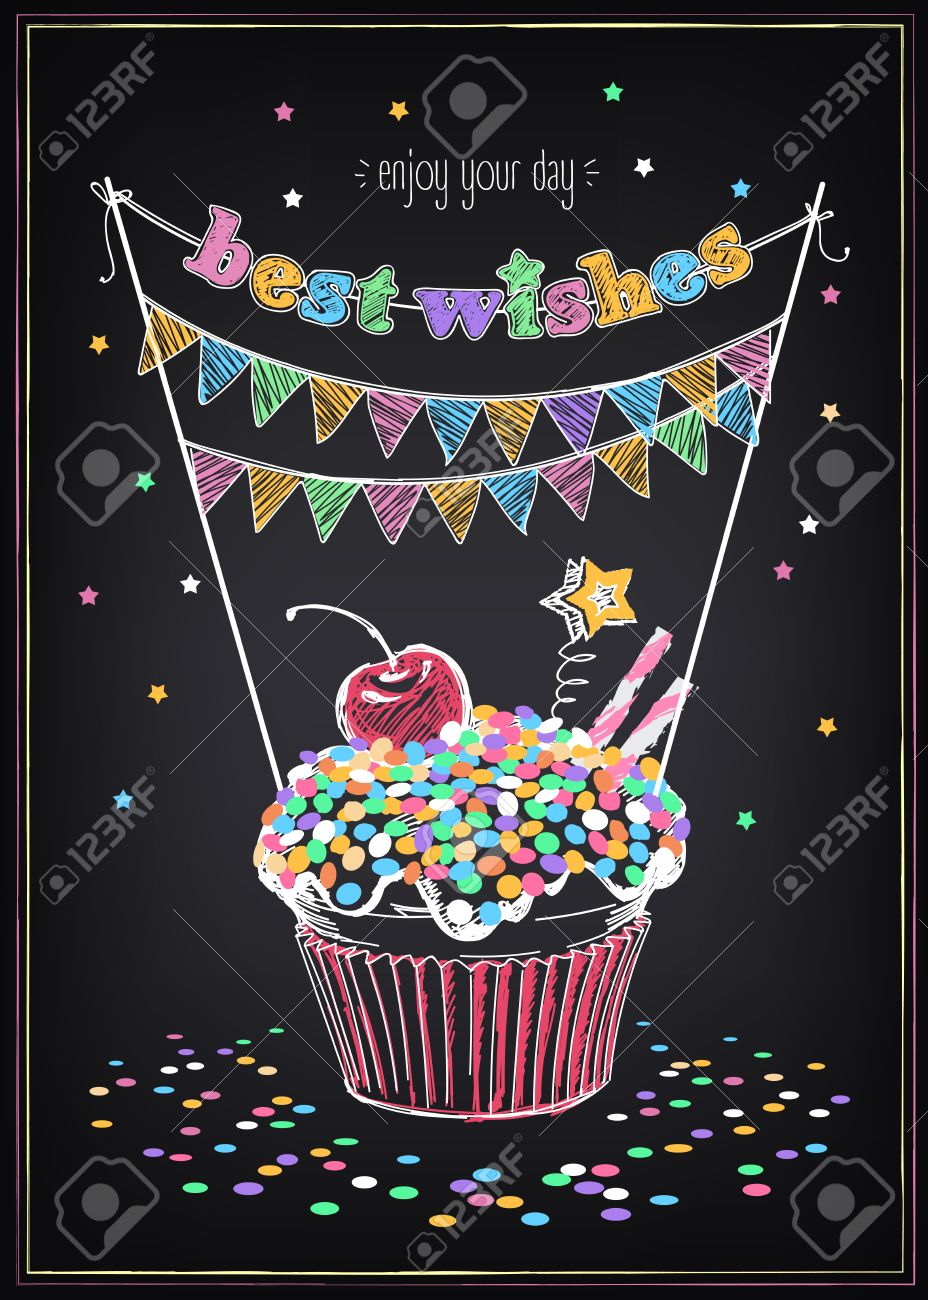 Invitation to the birthday party with a cupcake and confetti. Freehand drawing with imitation of chalk sketch - 51353487